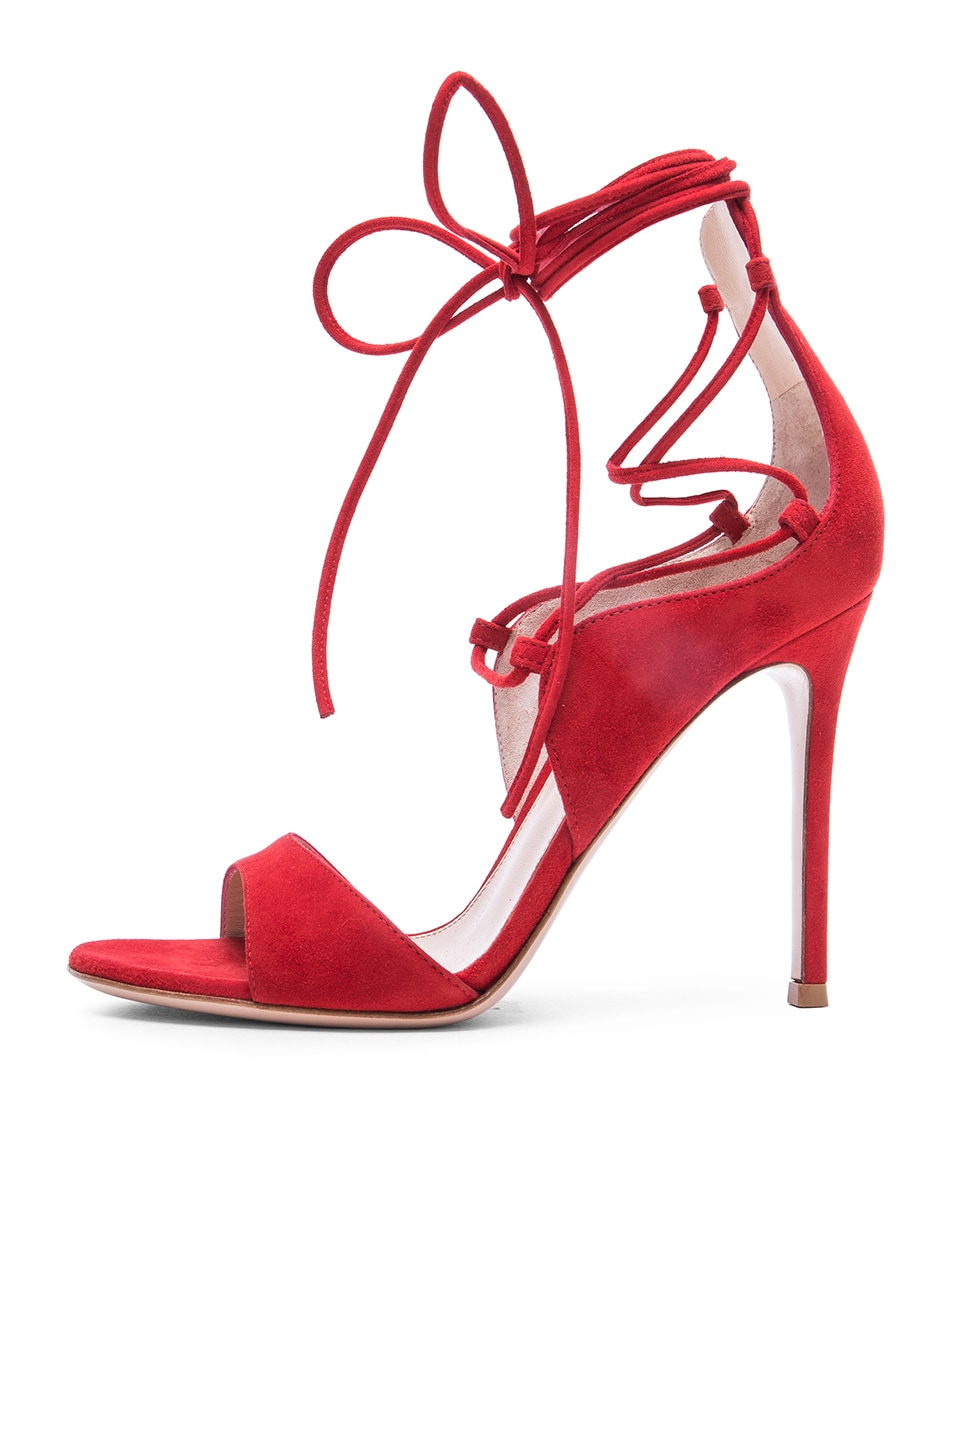 Image 5 of Gianvito Rossi Suede Lace Up Heels in Tabasco Red